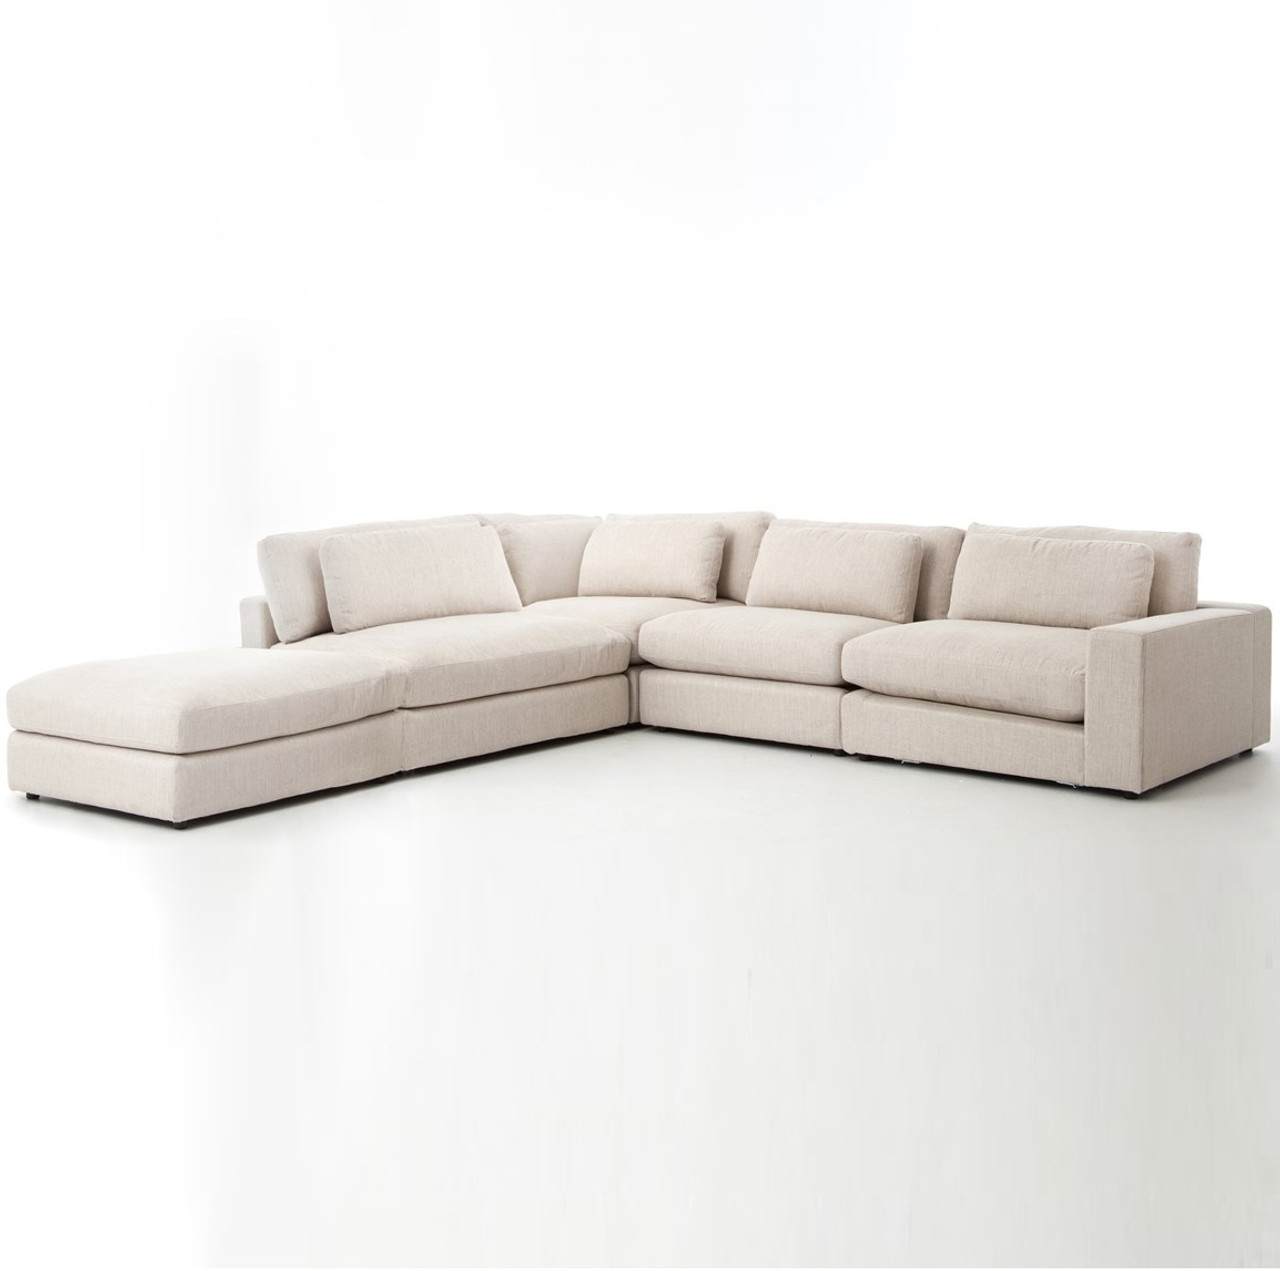 Bloor Beige Contemporary 5 Piece Corner Sectional Sofa Zin Home